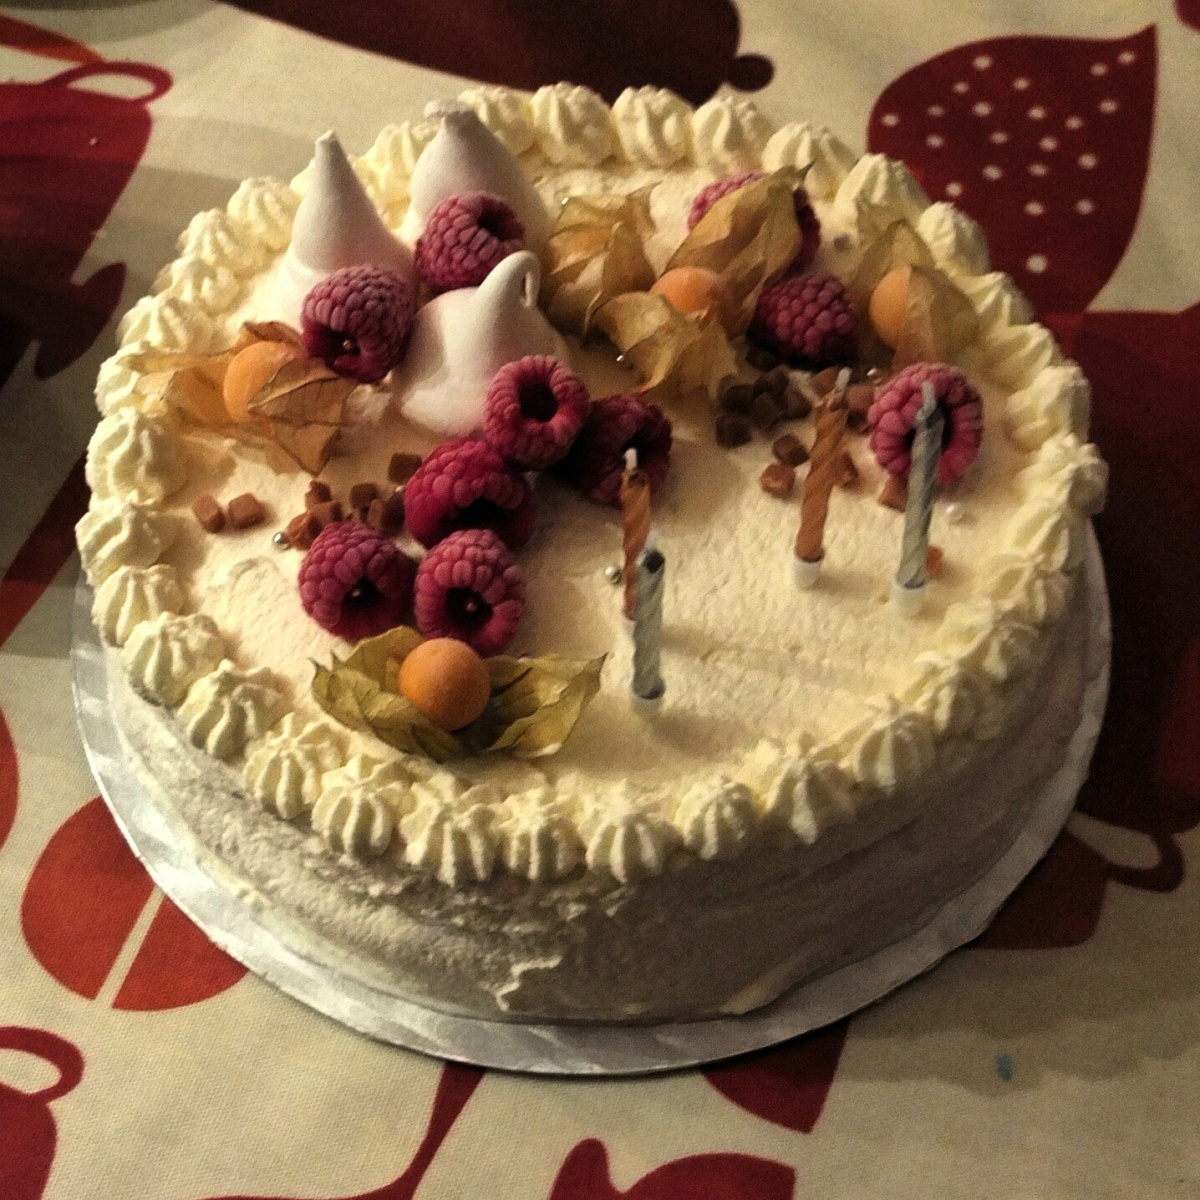 Simple raspberry and salted caramel vacherin glacé ice-cream cake recipe!   And the August cake collection with Sicilian desserts...